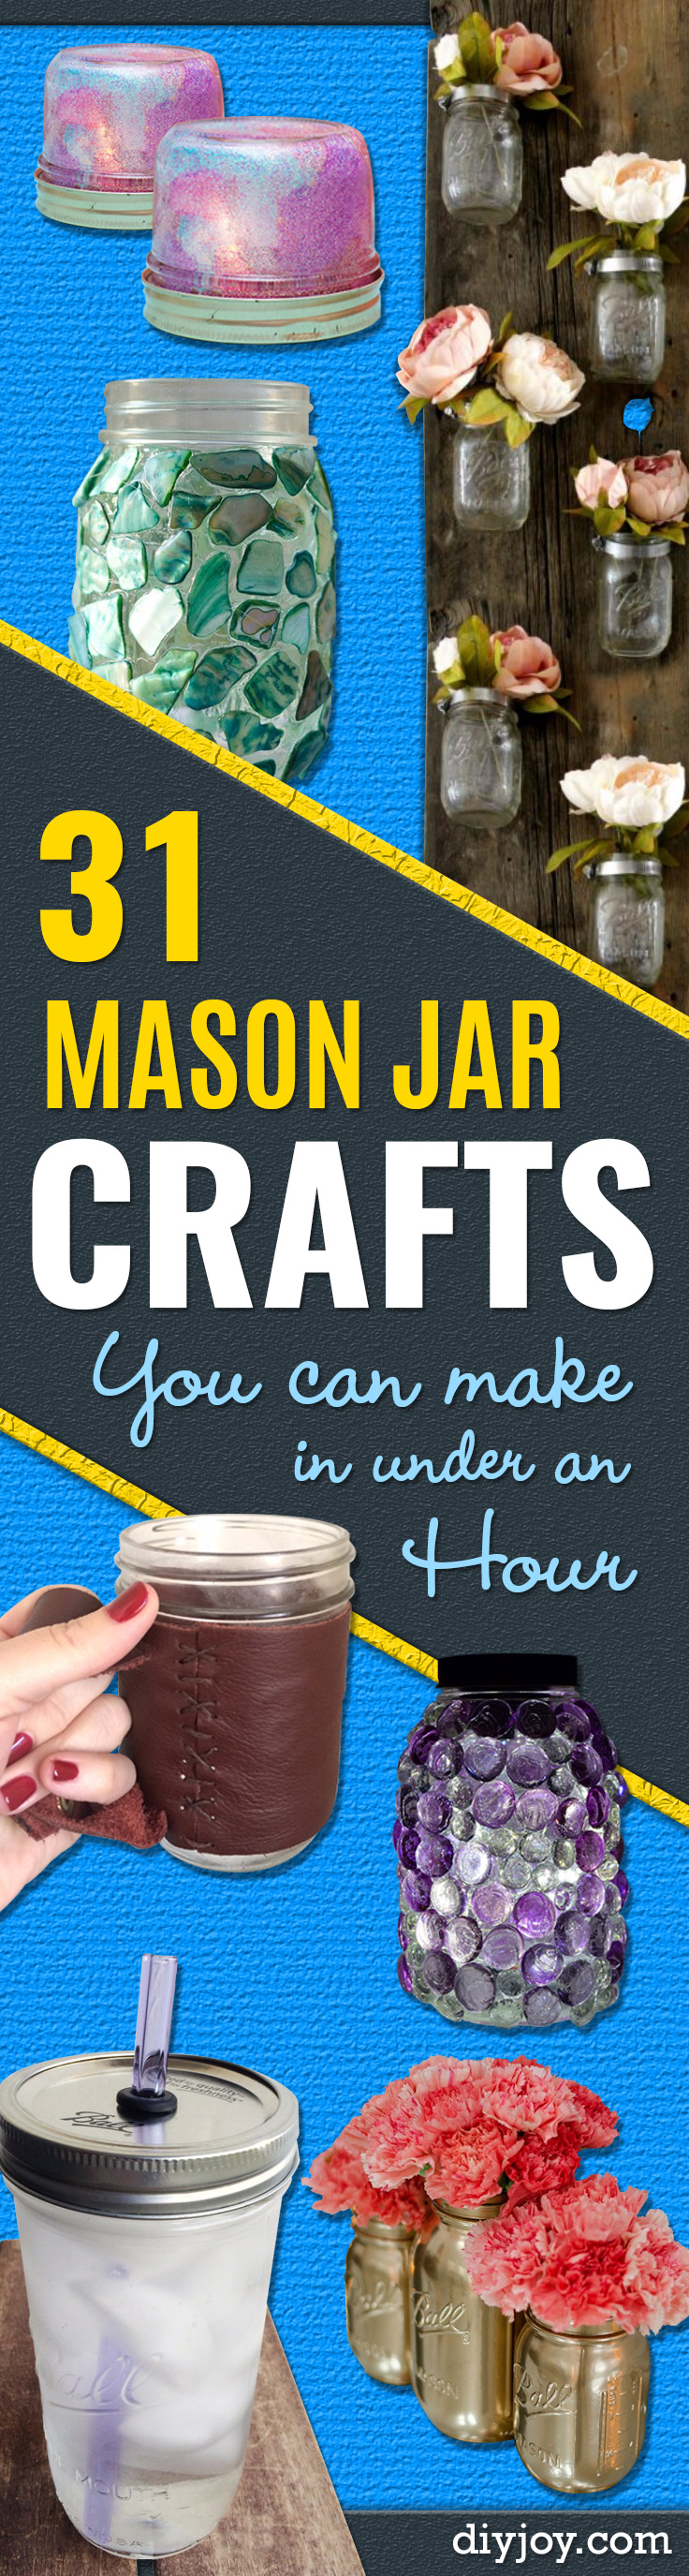 31 Mason Jar Crafts You Can Make In Under An Hour